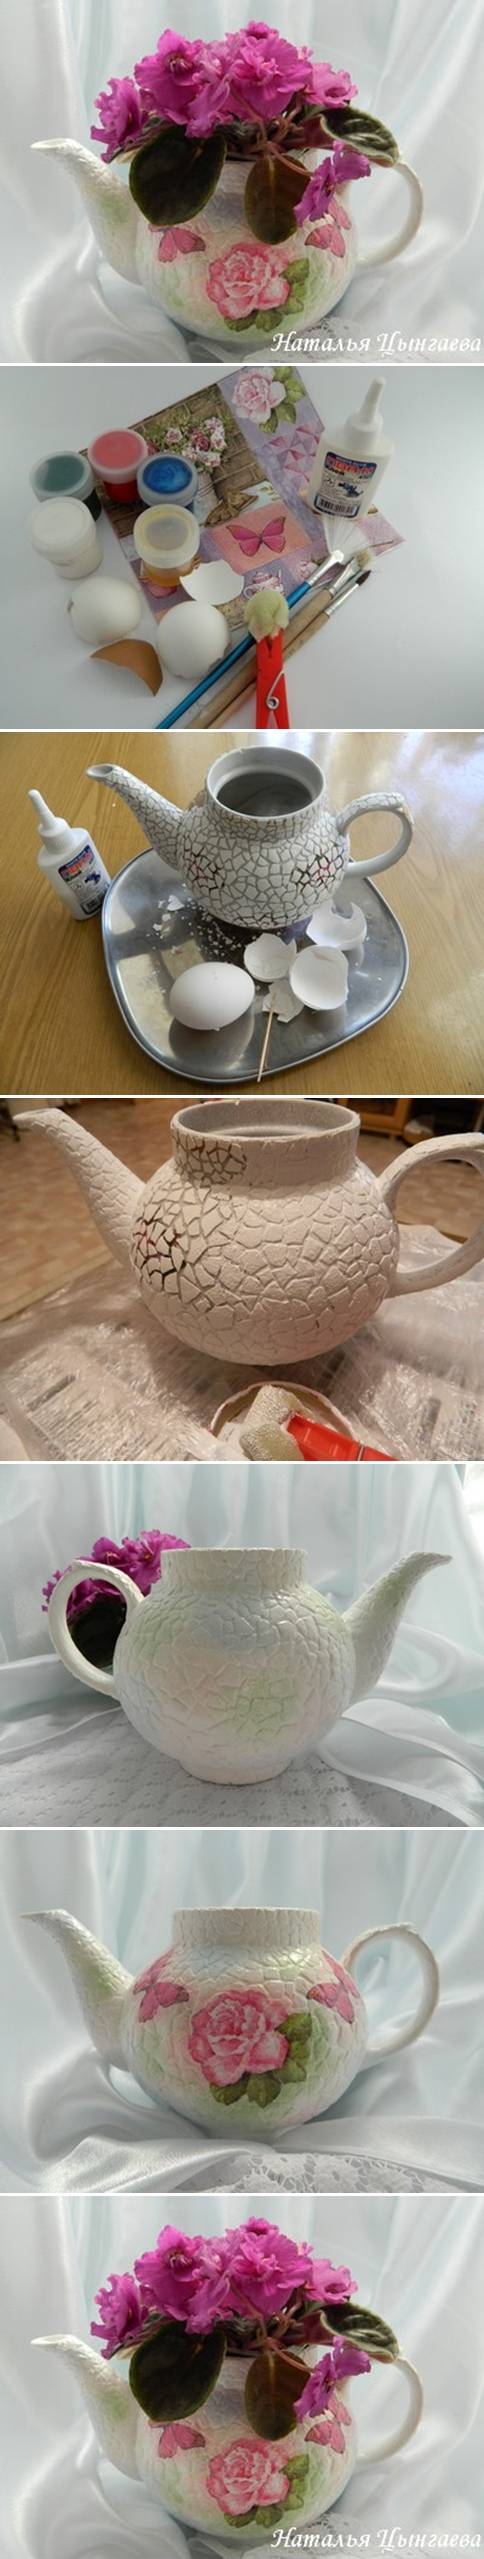 How to make Old Kettle Plant Pot with Eggshells step by step DIY tutorial instructions